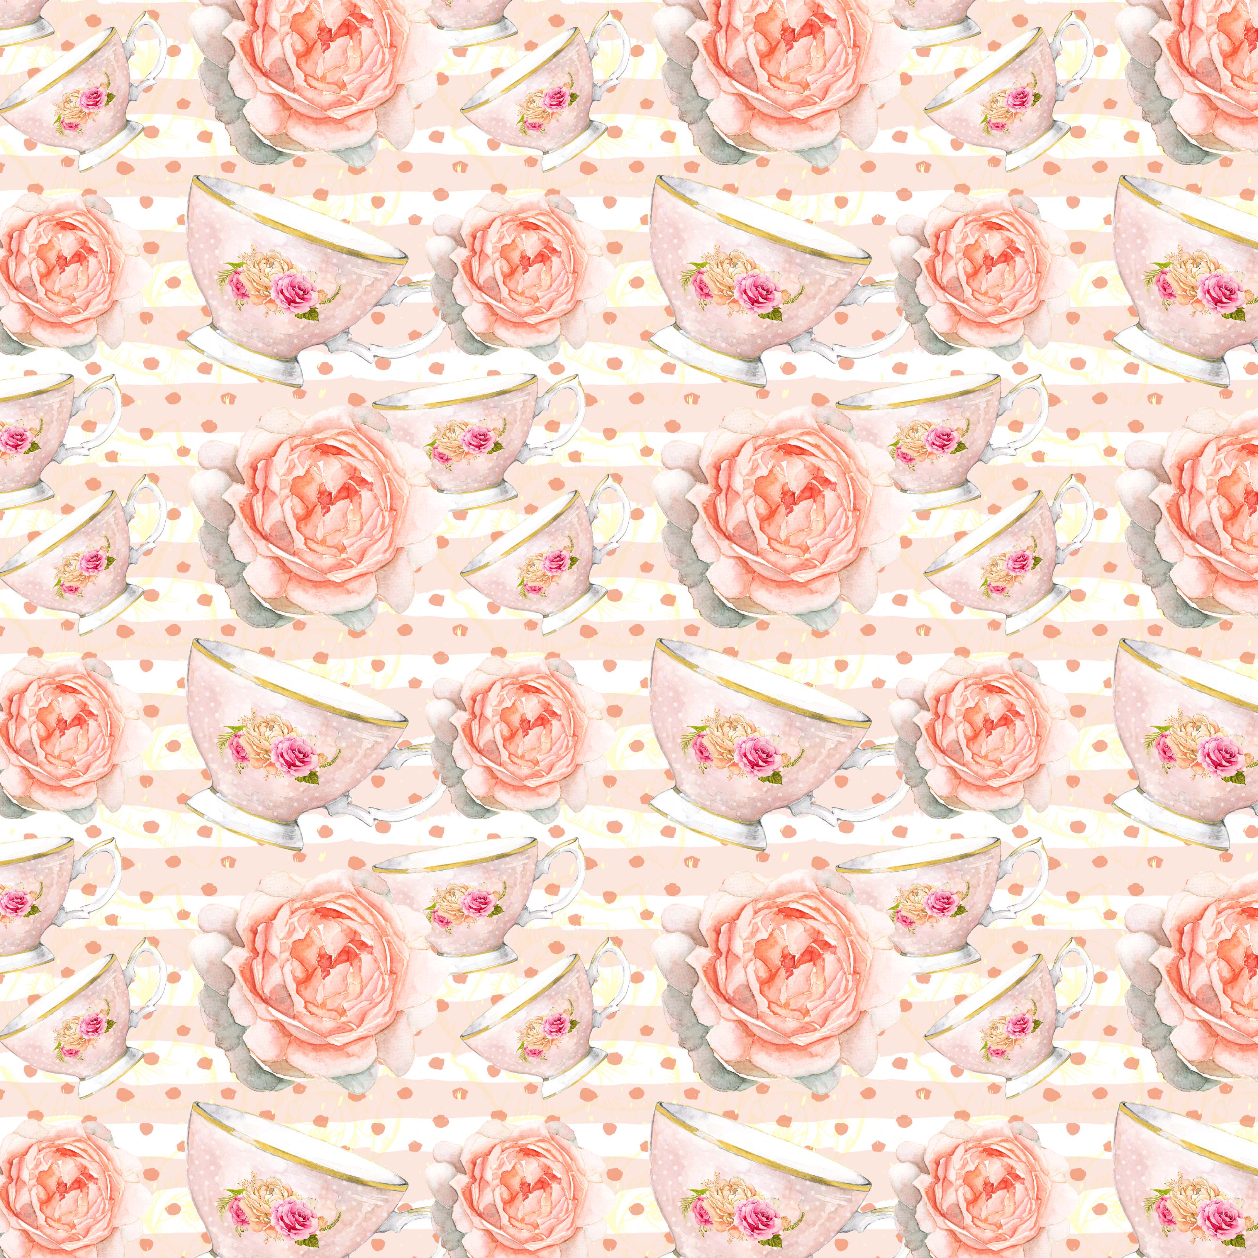 PRE ORDER - Beatrix Potter Teacups- Digital Fabric Print